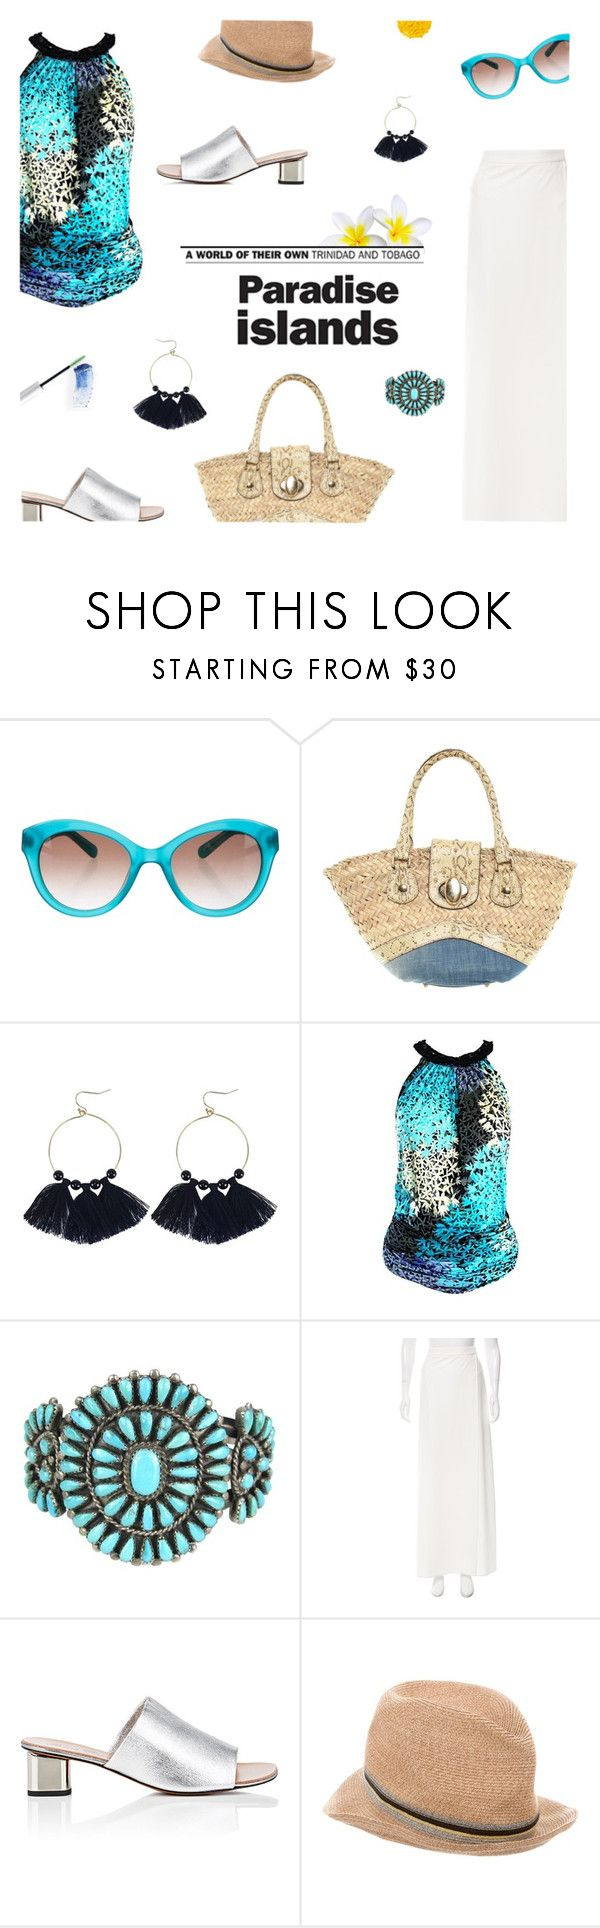 """""""Trinidad & Tobago"""" by maddophelia ❤ liked on Polyvore featuring Kate Spade, Dolce&Gabbana, Alessandro Dell'Acqua, Maison Margiela, Robert Clergerie, Eugenia Kim, W3LL People, Illamasqua and TropicalVacation"""